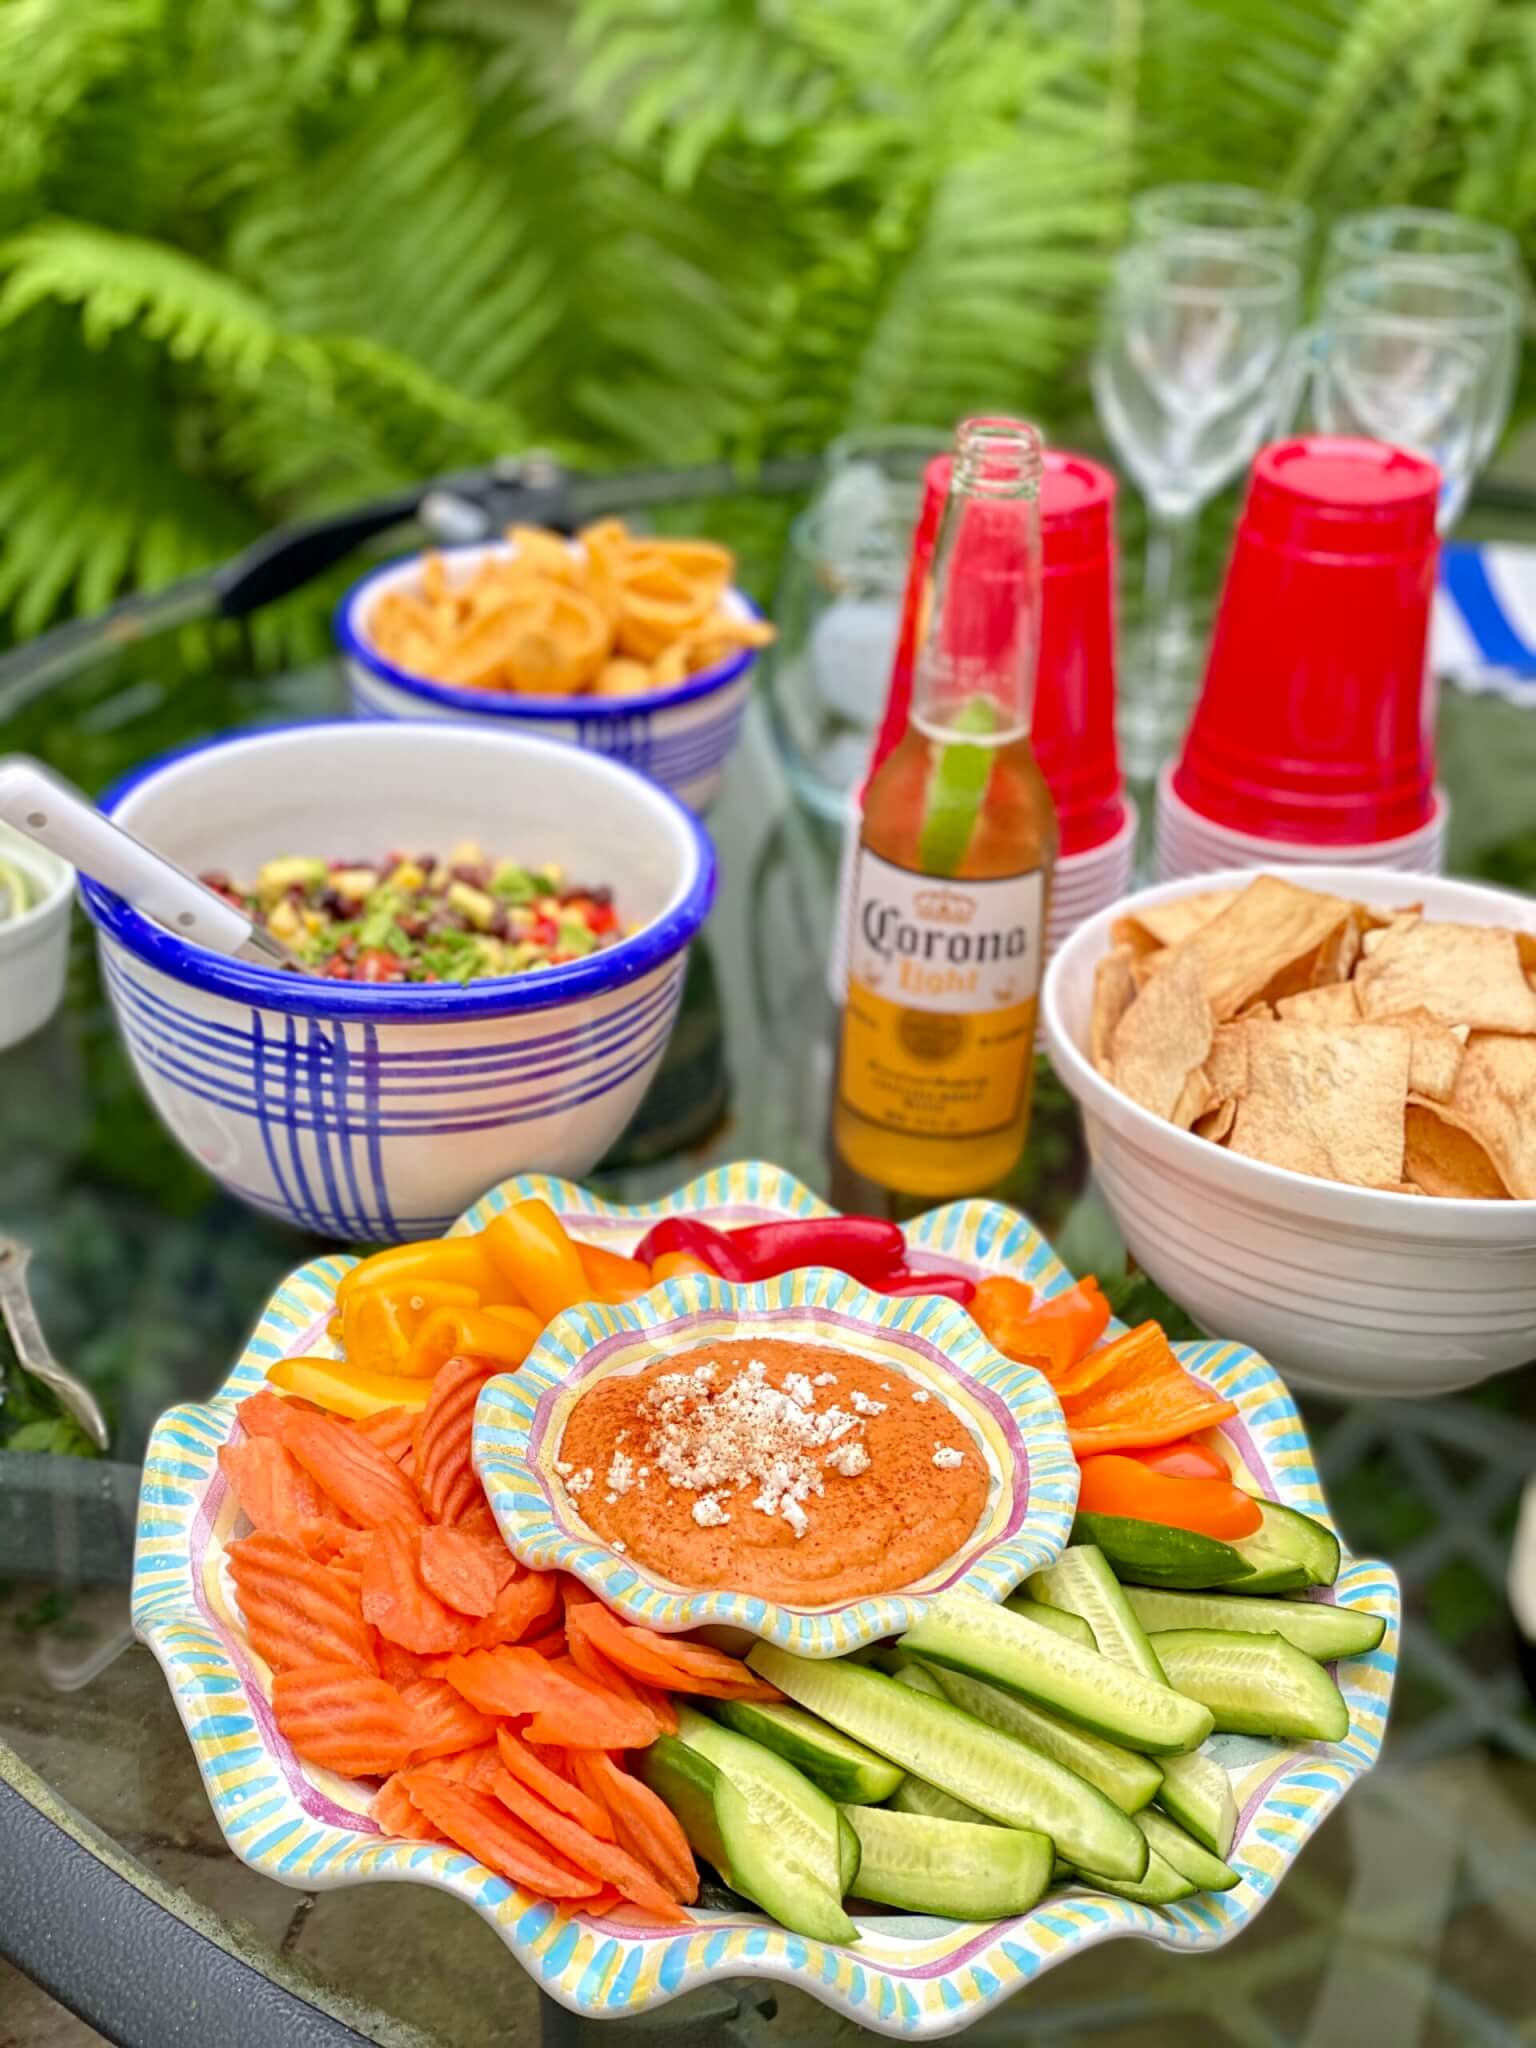 Afew key ingredients add eye-catching color and incredible flavor to this classically creamy, protein-rich dish. And whileperfect as a filling snack or easy appetizer, hummus can be enjoyed in other unexpected ways!